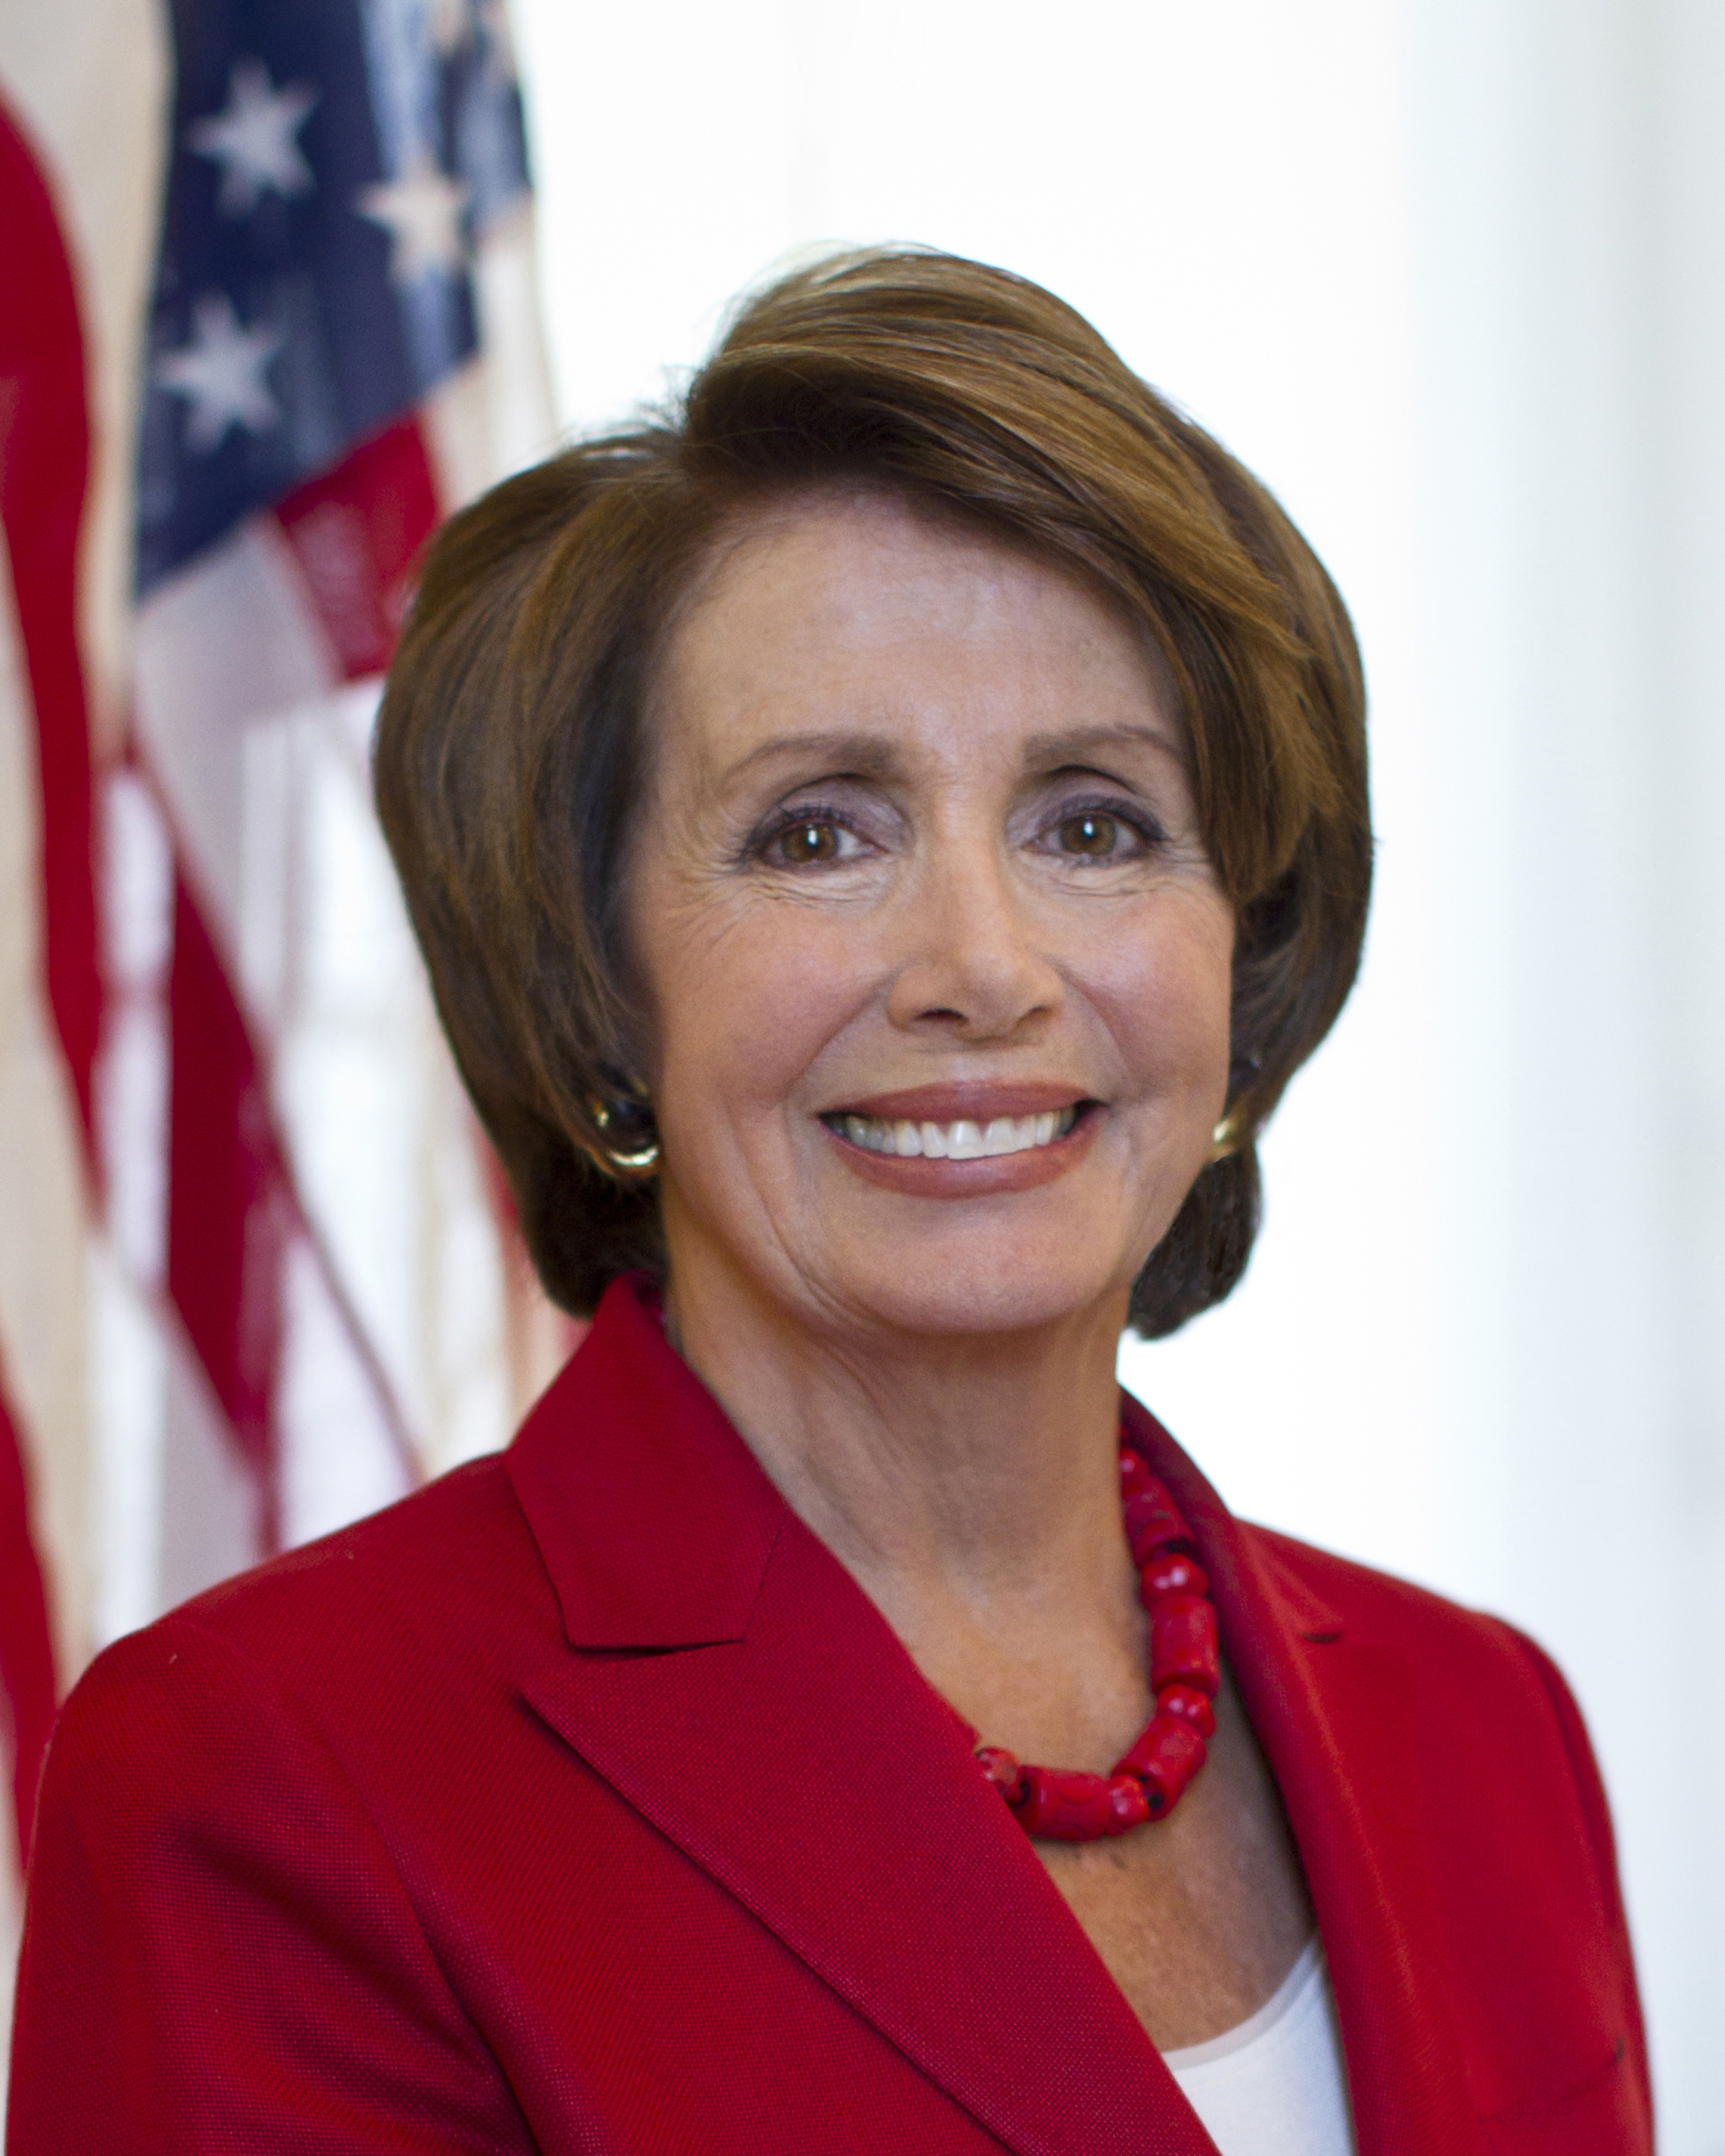 Jan._11_Nancy_Pelosi.jpg